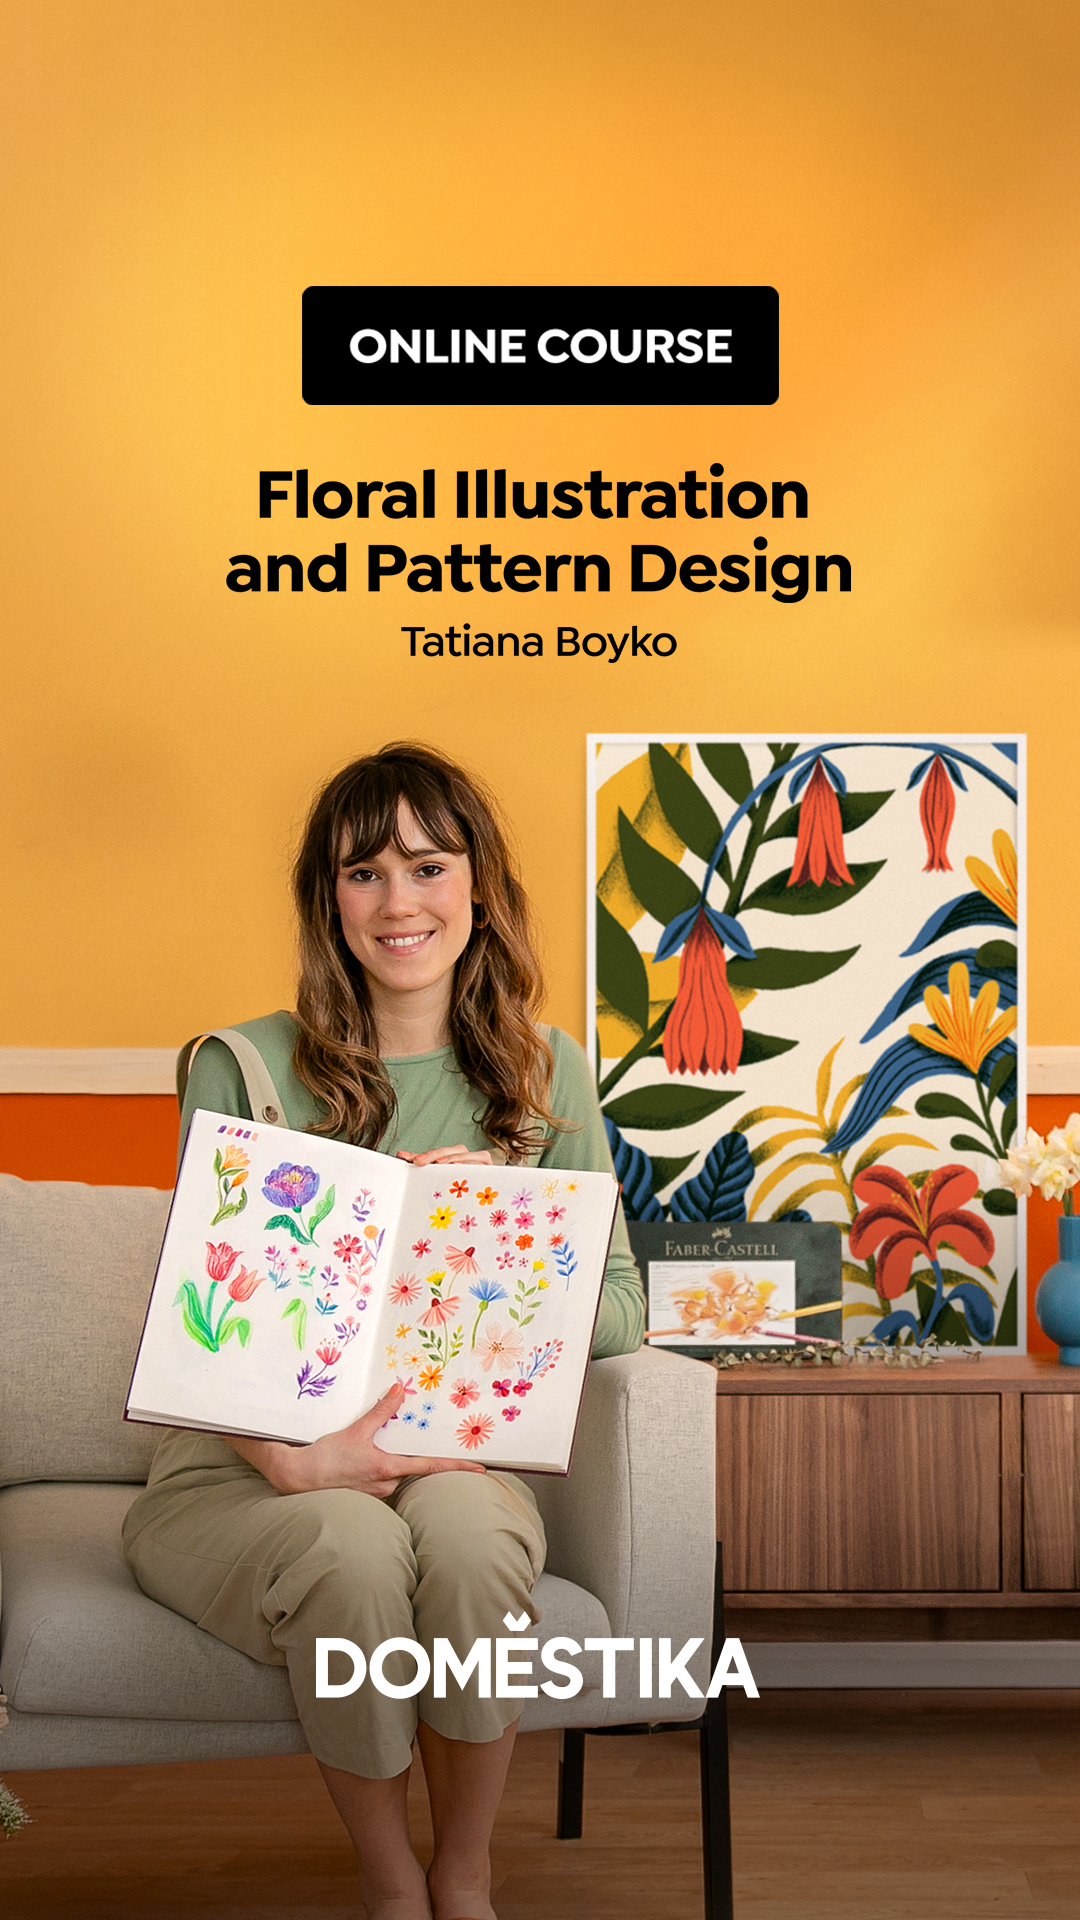 Floral Illustration and Pattern Design - Domestika Course